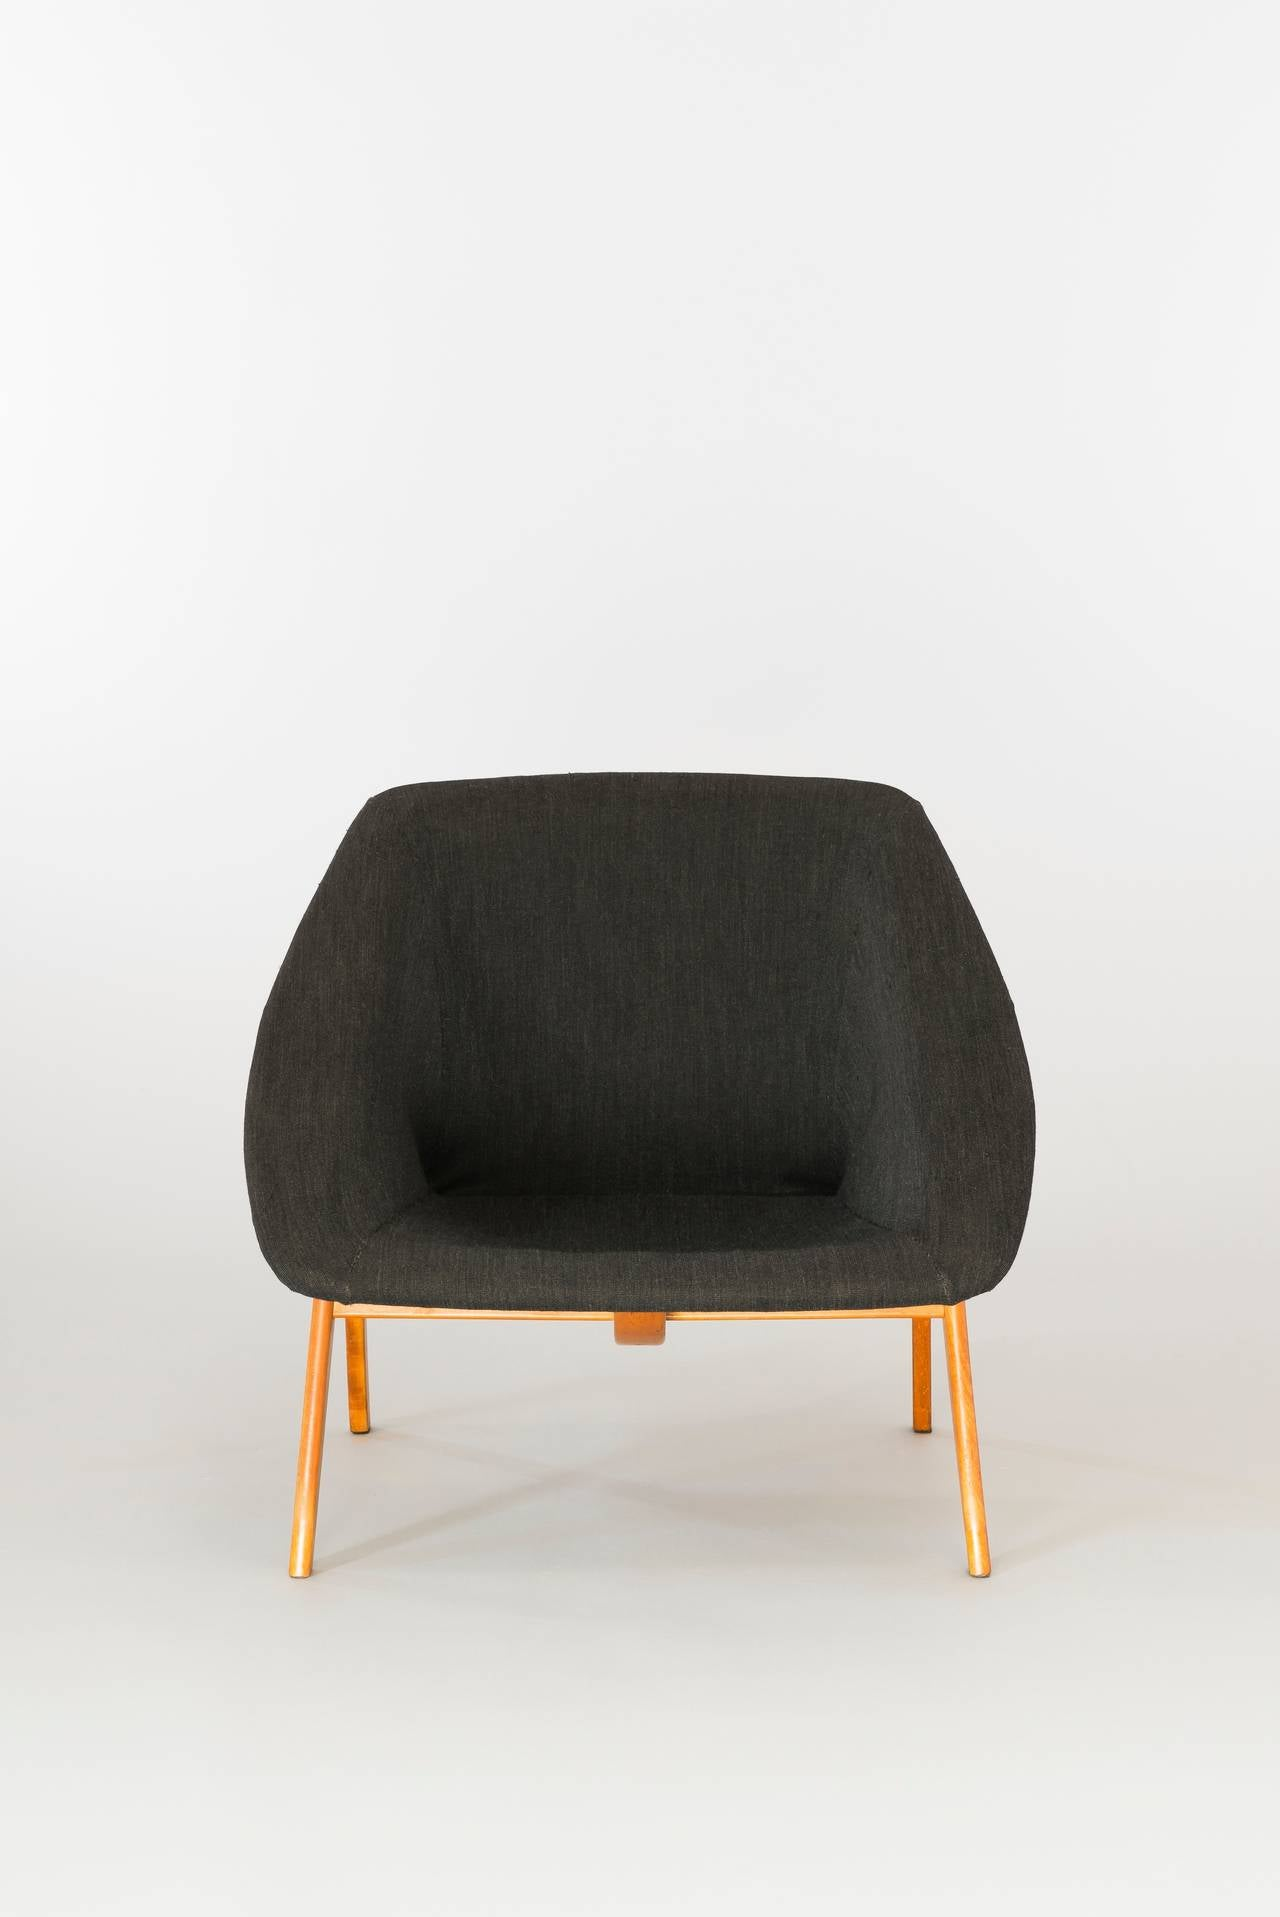 armchair a3 by arp steiner edition 1953 for sale at 1stdibs. Black Bedroom Furniture Sets. Home Design Ideas